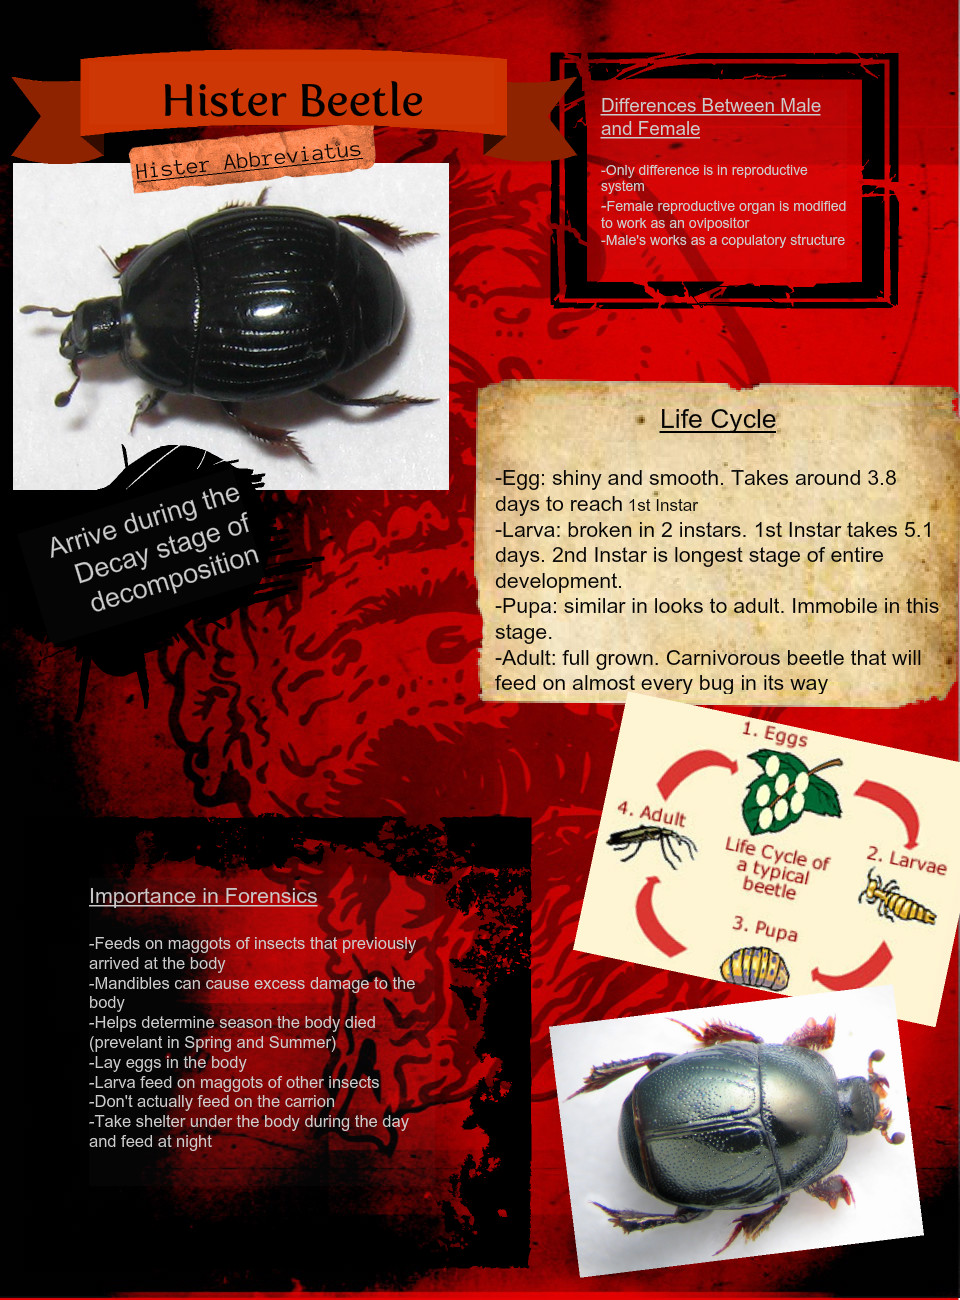 Hister Beetle